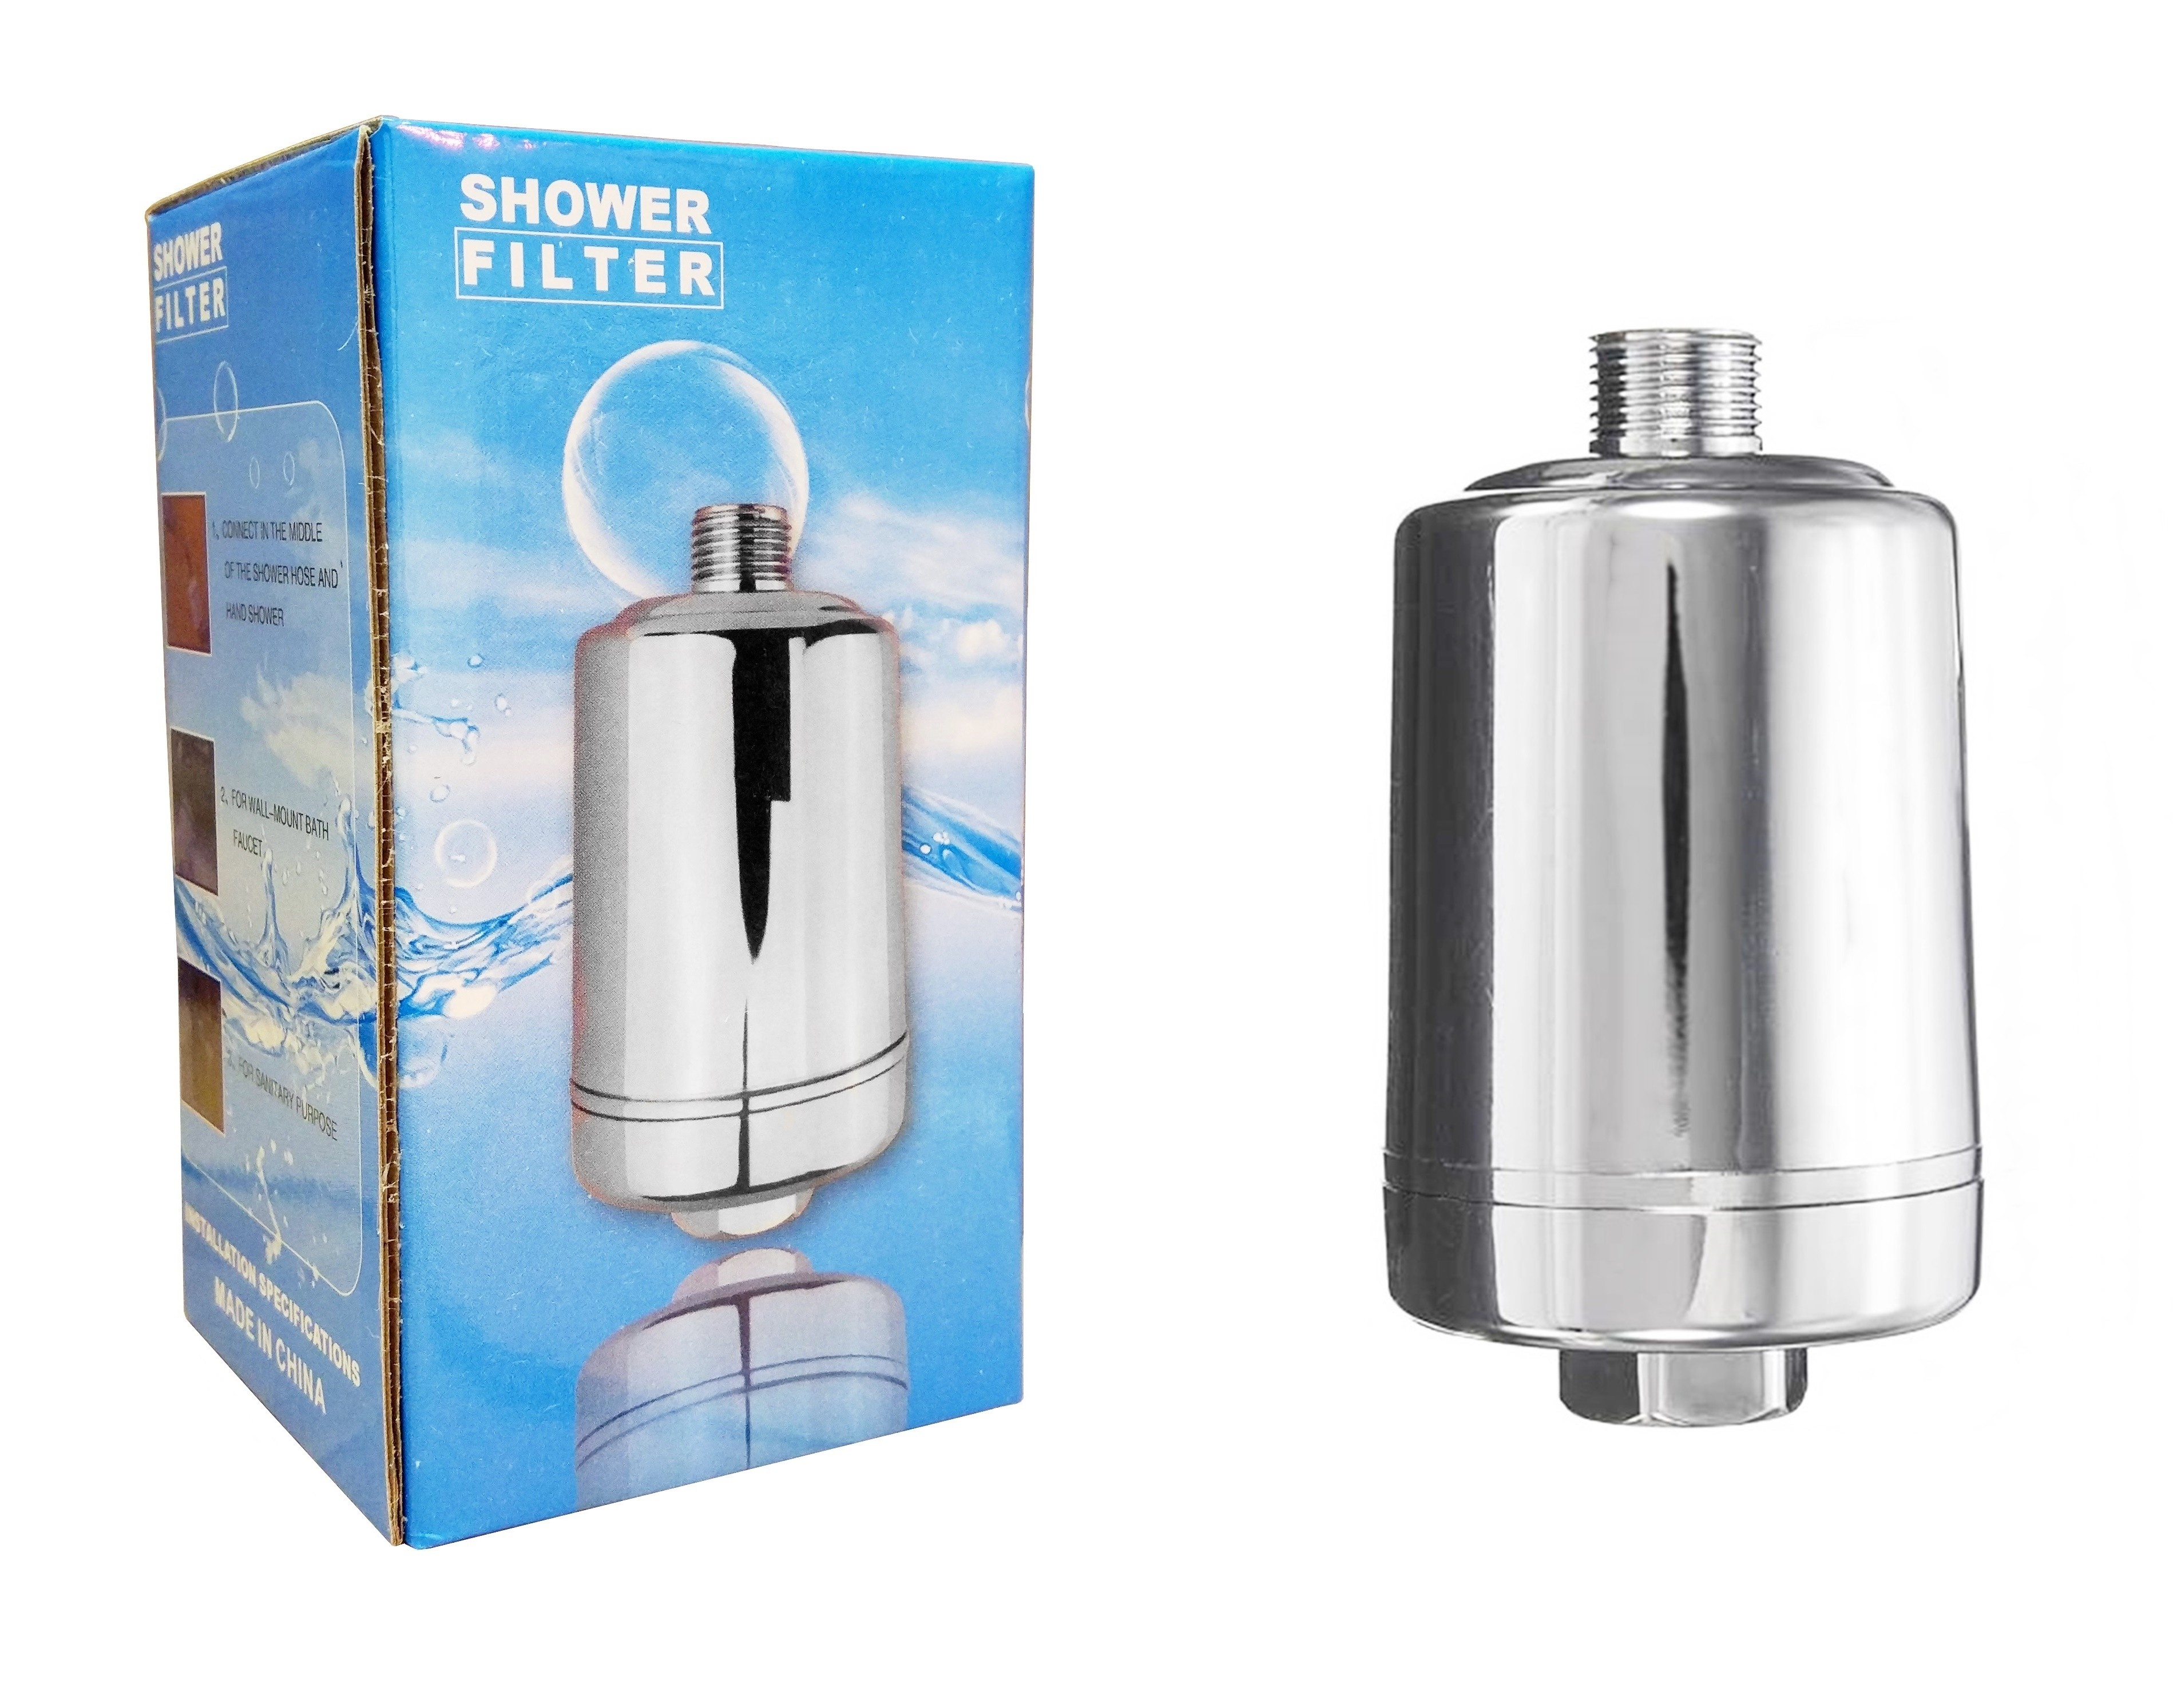 Finerfilters Shower Filter in Chrome